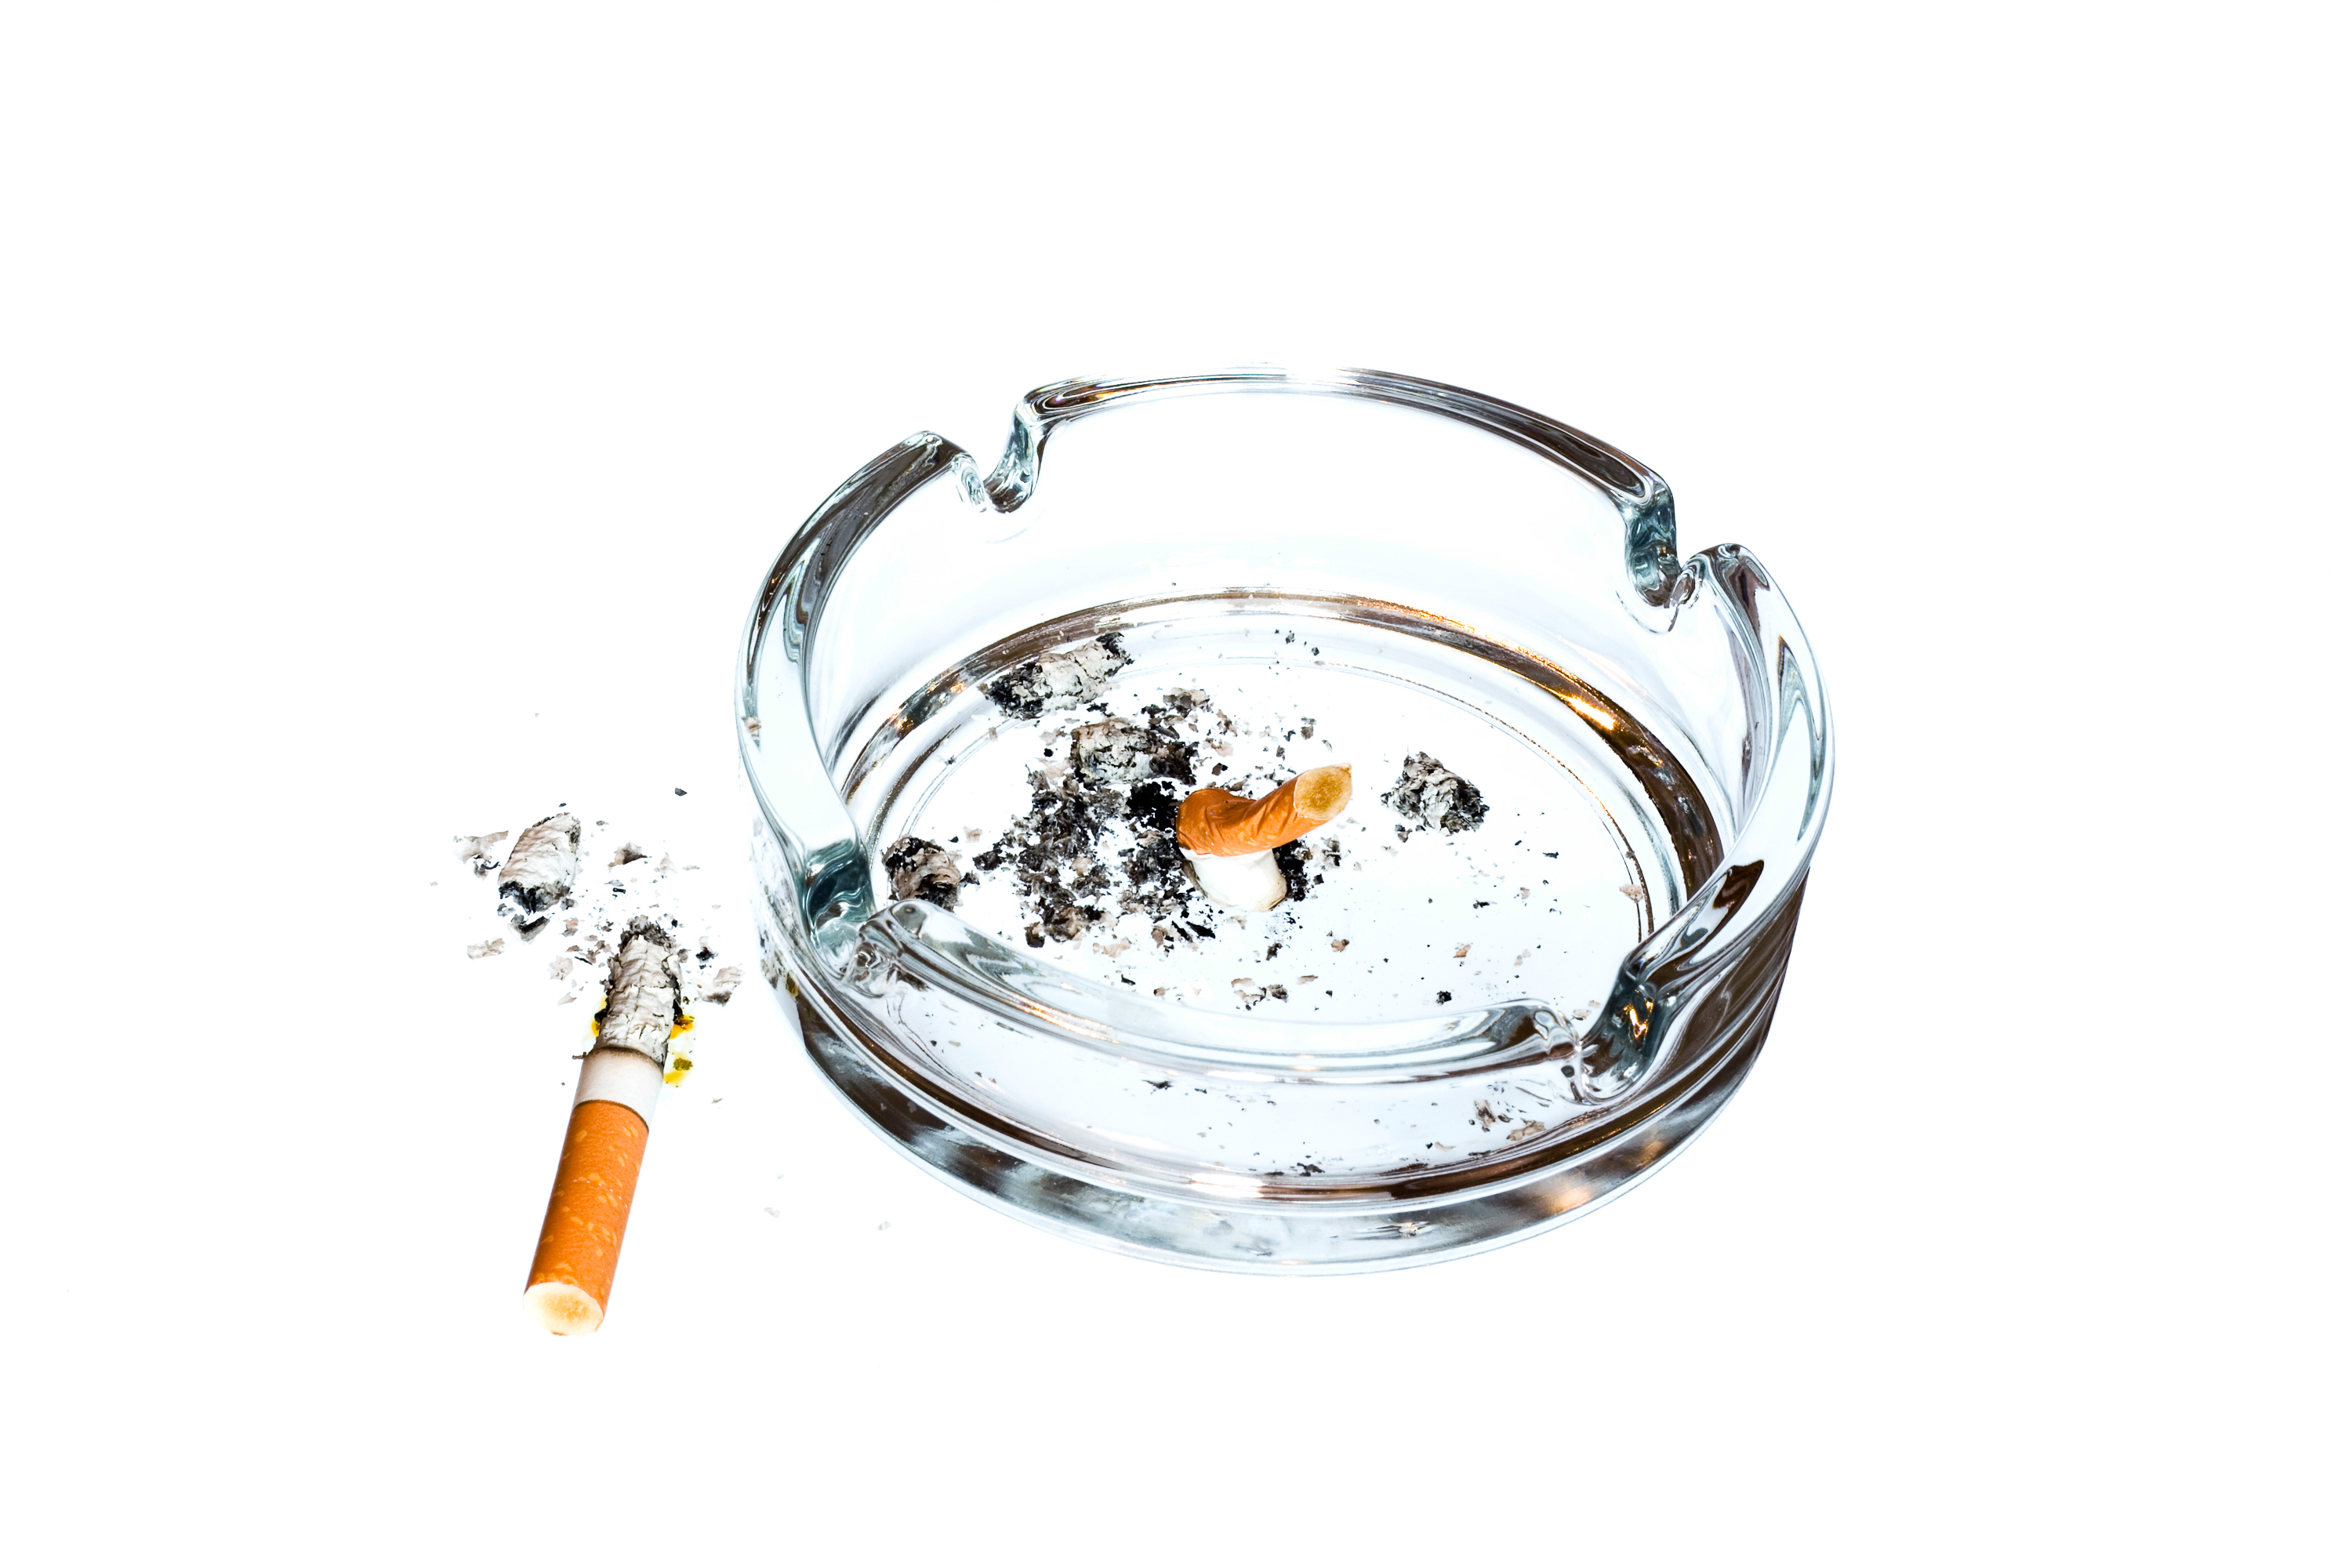 Cigarettes, Smoke, Stop, Object, Narcotic, HQ Photo